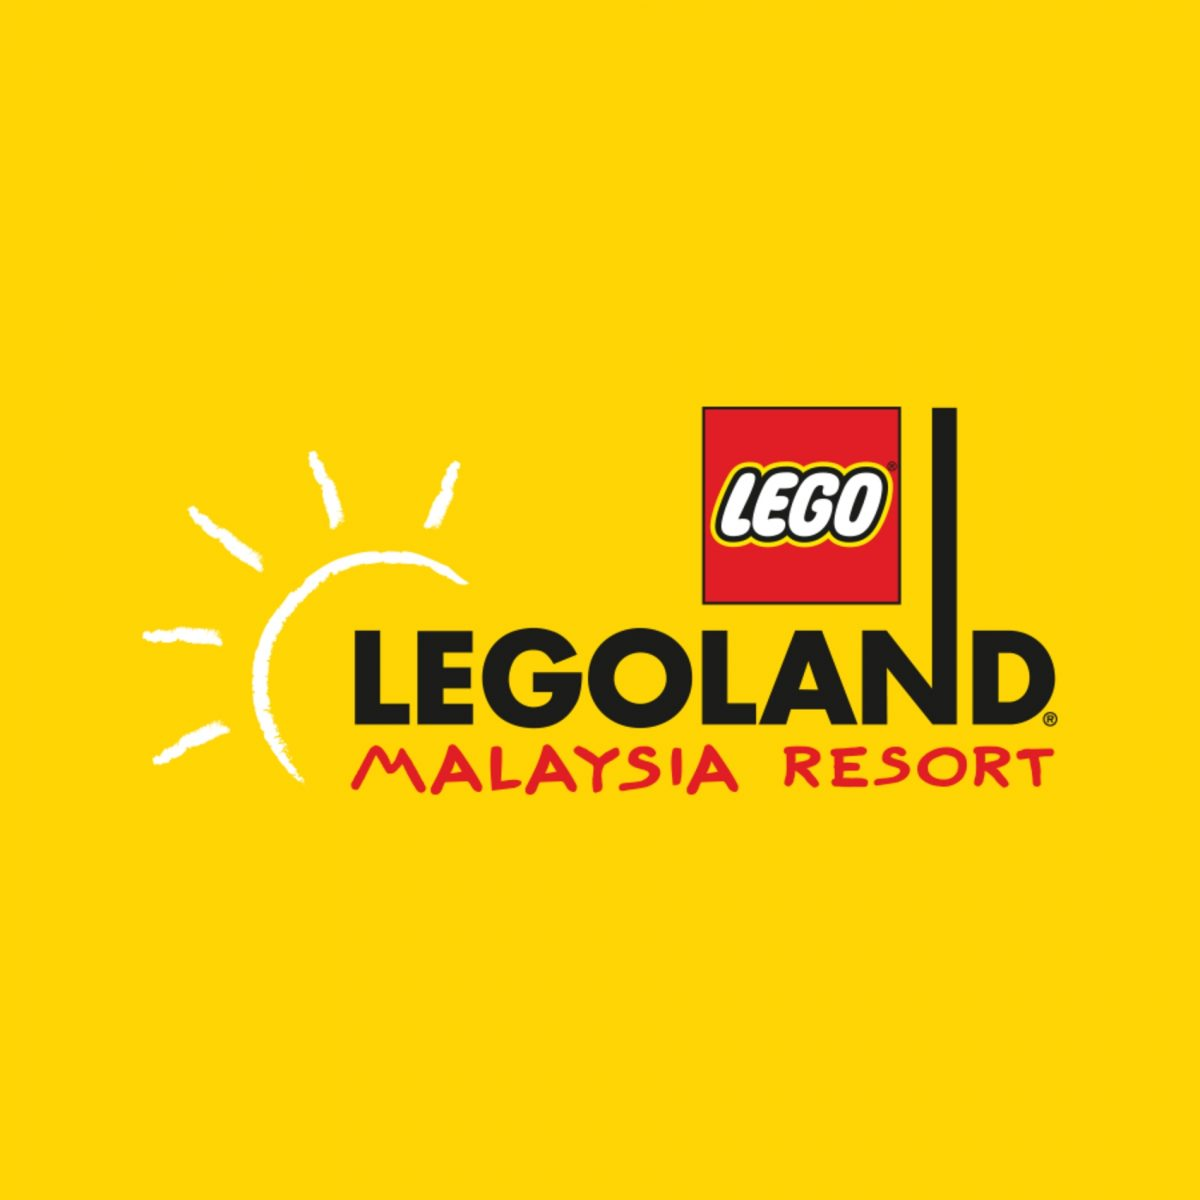 Get a LEGOLAND® Annual Pass at the Price of a One Day Ticket with Free Entrance to SEA LIFE Malaysia